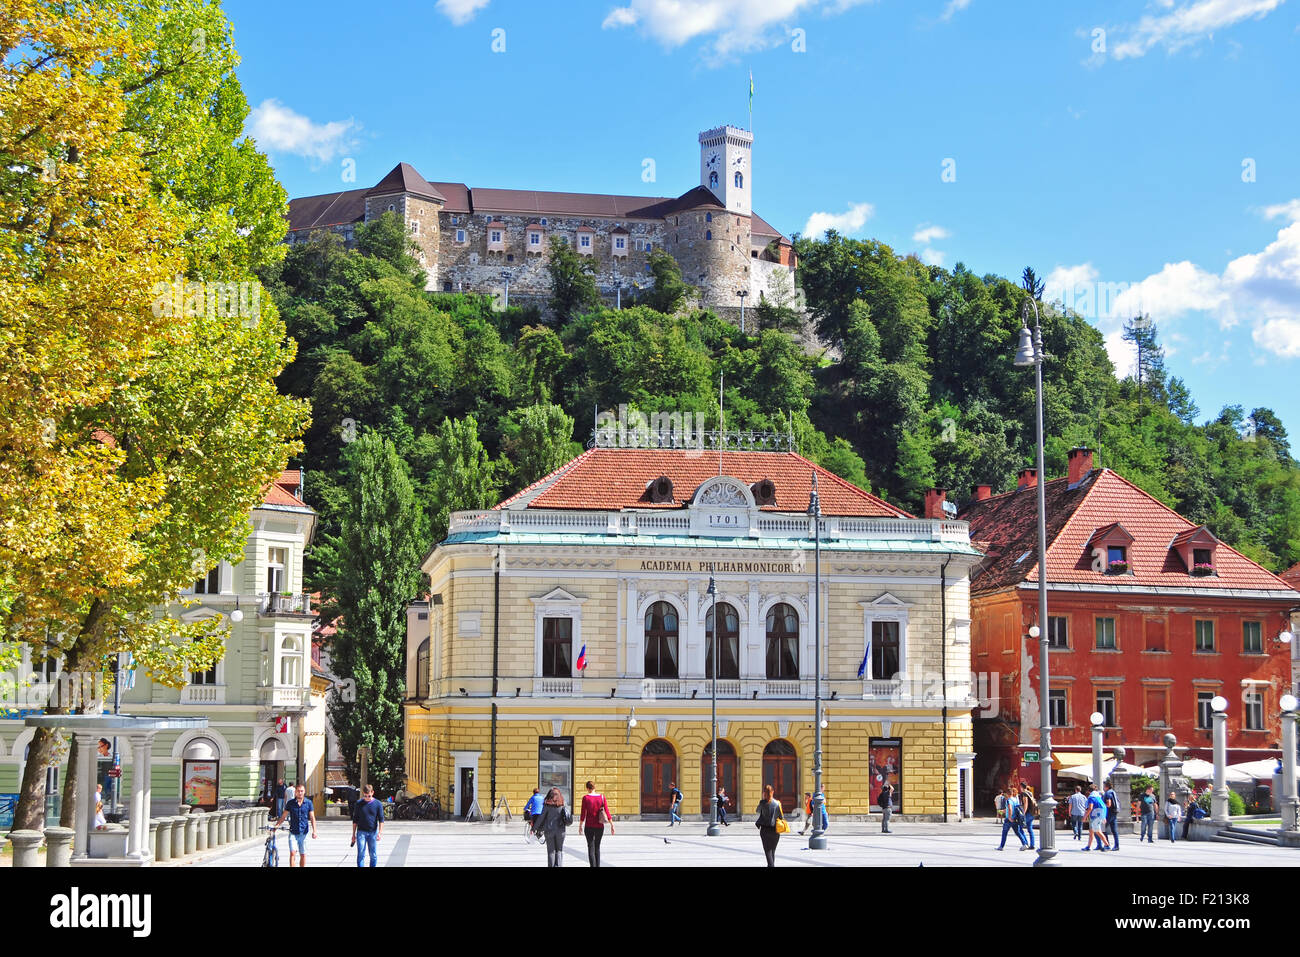 Ljubljana, Slovenia - September 7, 2015 - Congress square and Ljubljana's castle on a bright sunny day - Stock Image